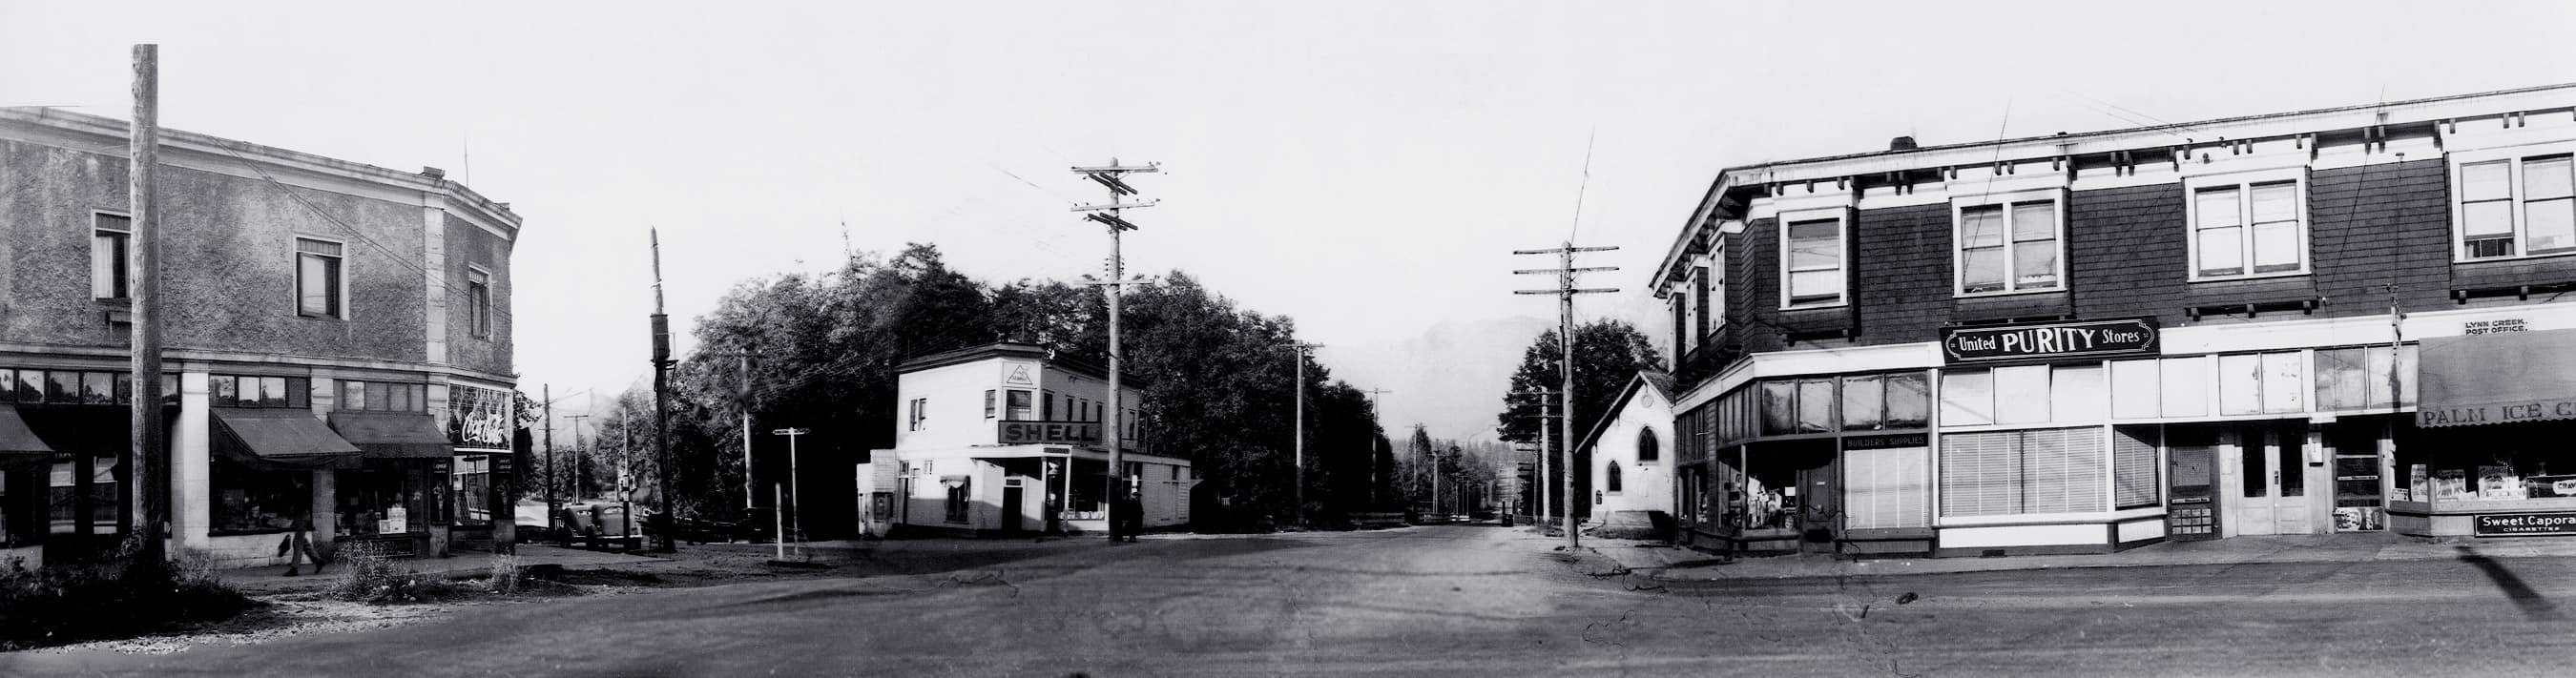 ca. 1950s. Panoramic image along Lynn Valley Road, across from Mountain Hwy. Buildings depicted from left to right: the Brier Block; the Triangle block; the Fromme block. Lynn Valley United Church can be seen behind the Fromme block. This image was taken after the streetcar lines had been removed.